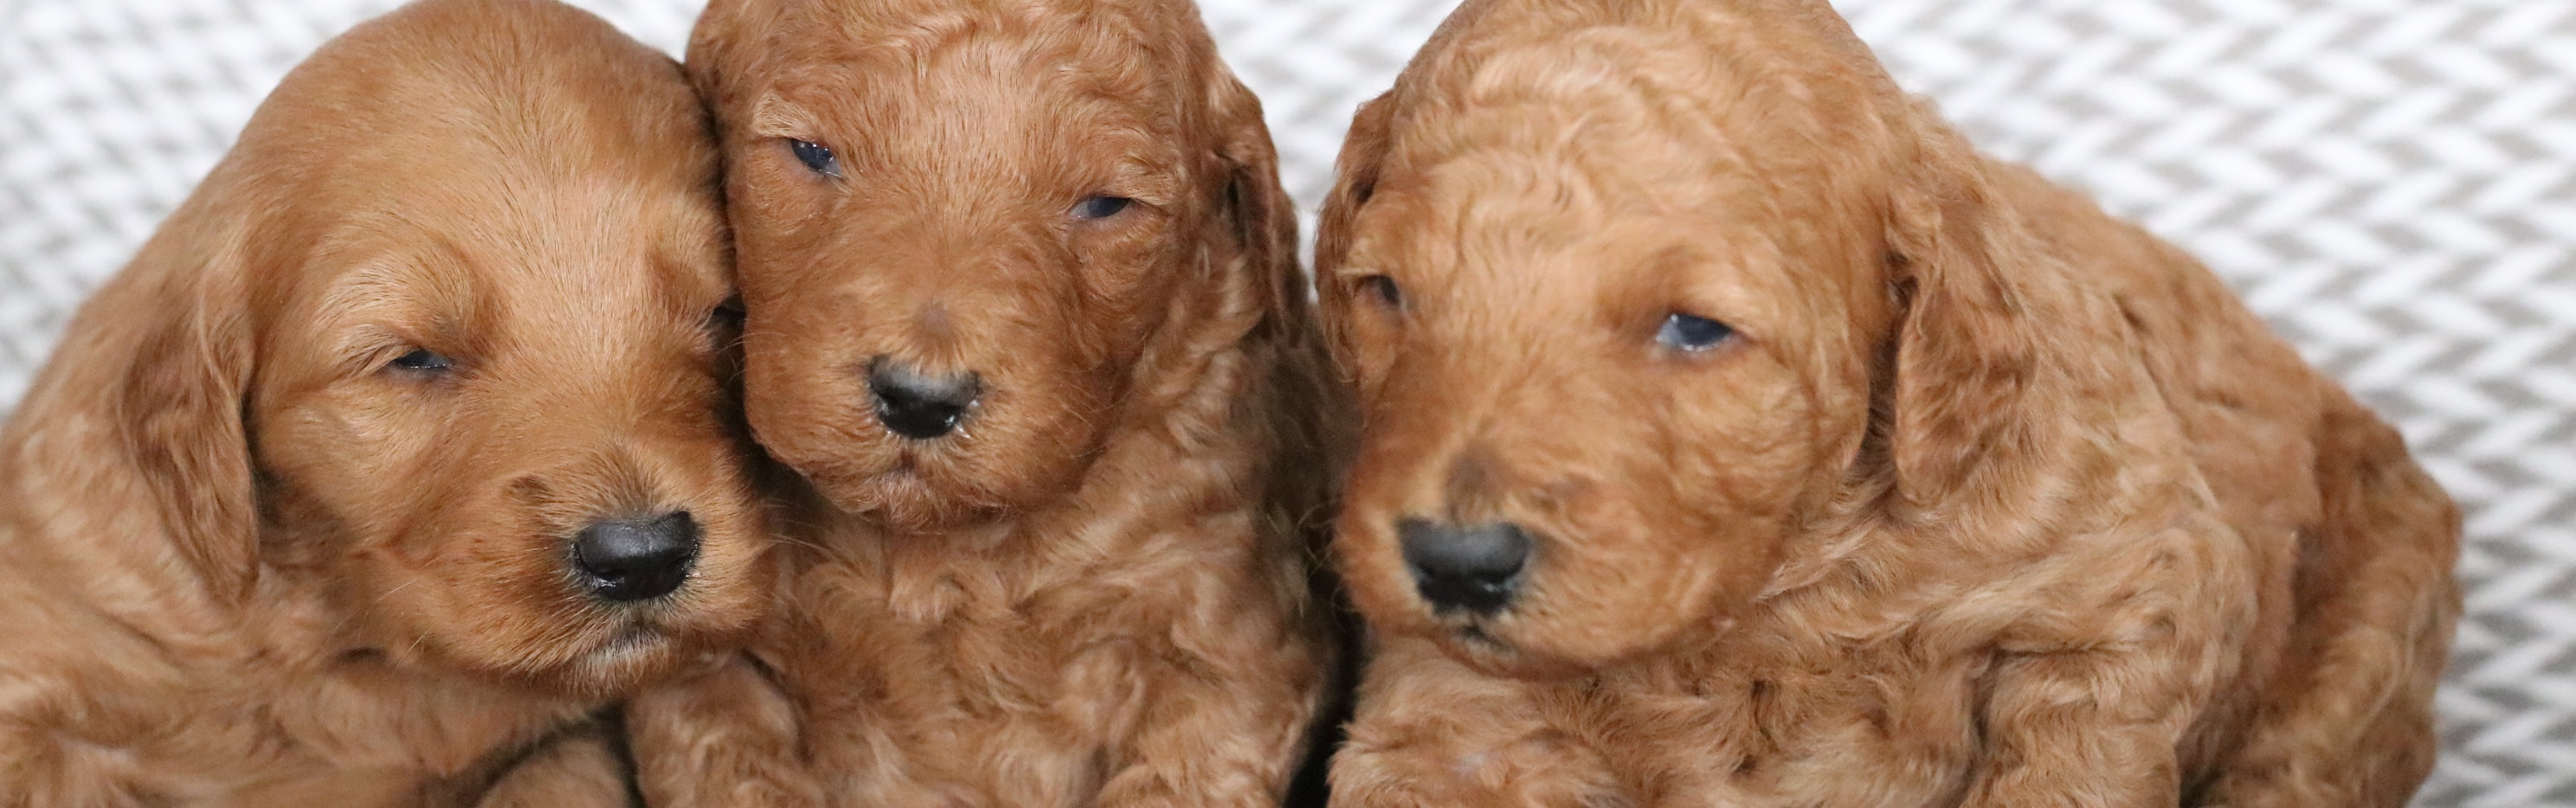 Cinnamon X Carlos Cruz Mini Red F1b Goldendoodles Ready 2 23 Goldendoodle Breeder Ny Goldendoodle Puppies Ny Mini Sheepadoodle Puppies Doodles By River Valley Doodle Puppies